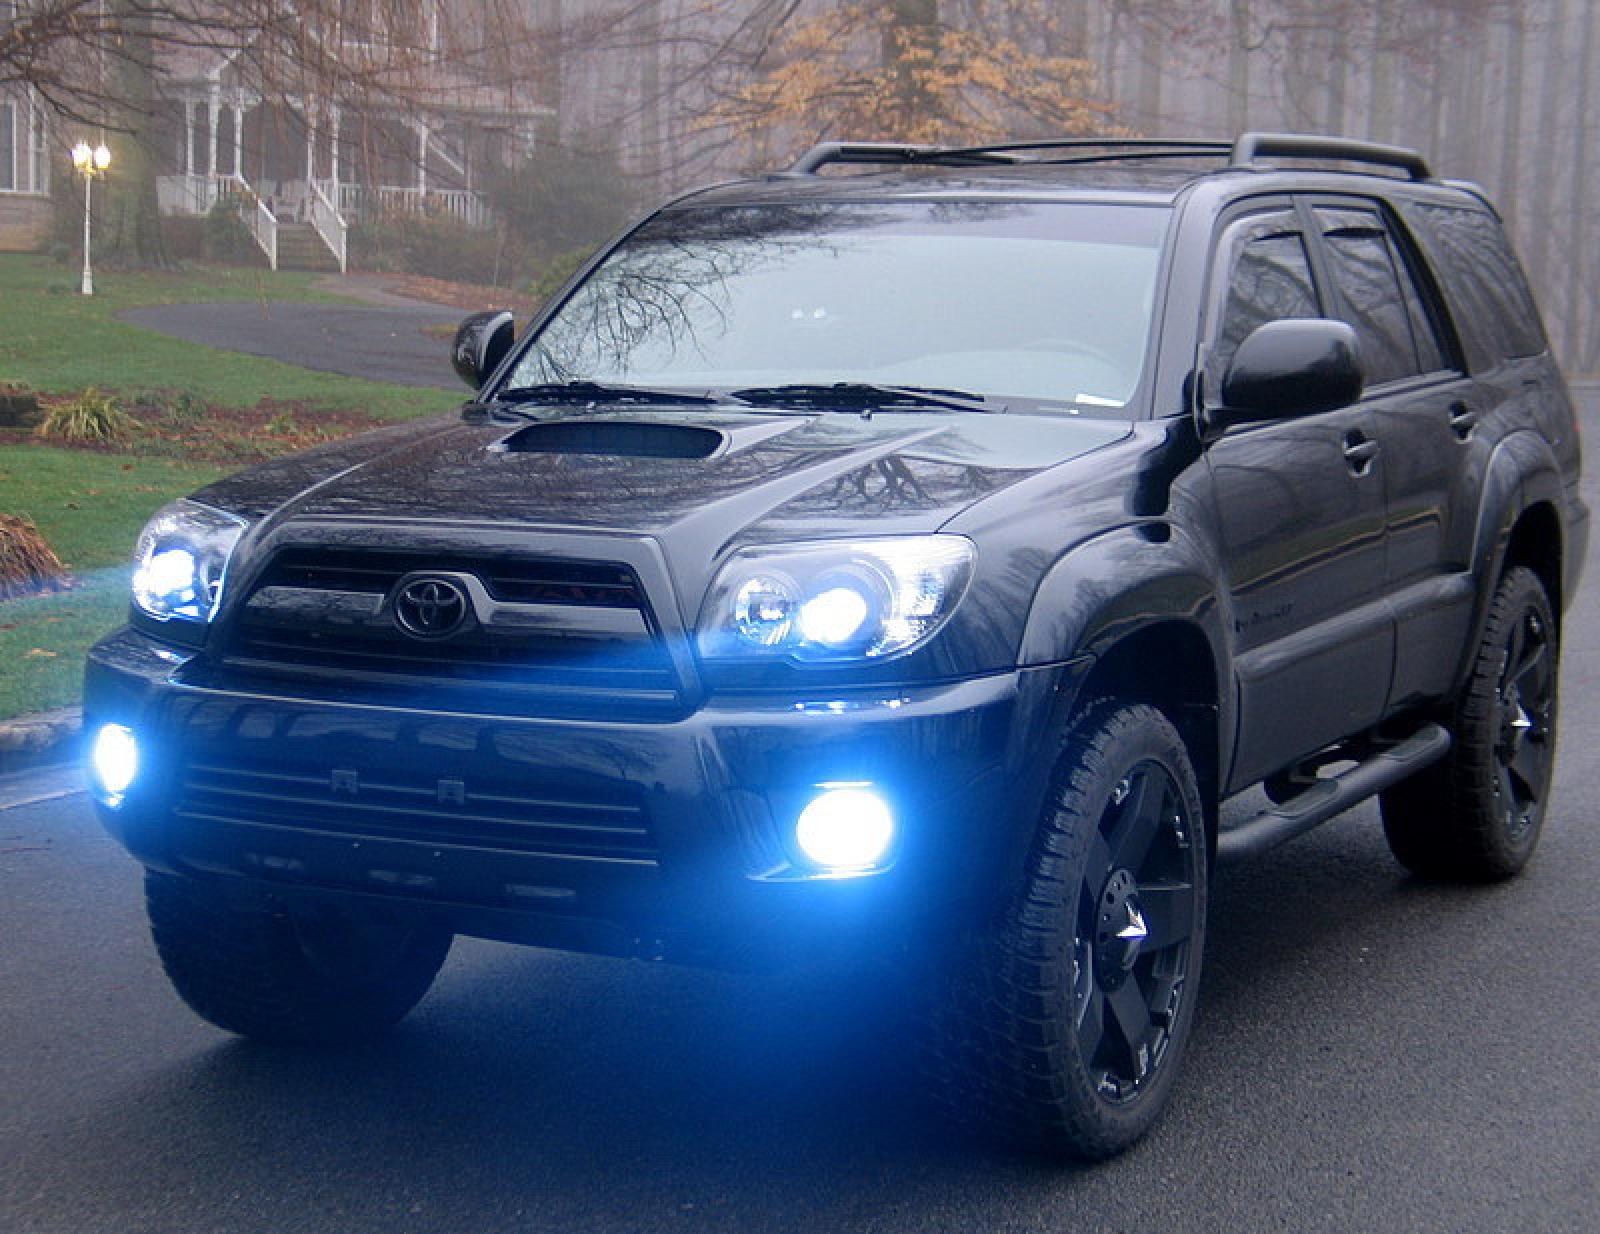 2008 Toyota 4Runner Information and photos ZombieDrive